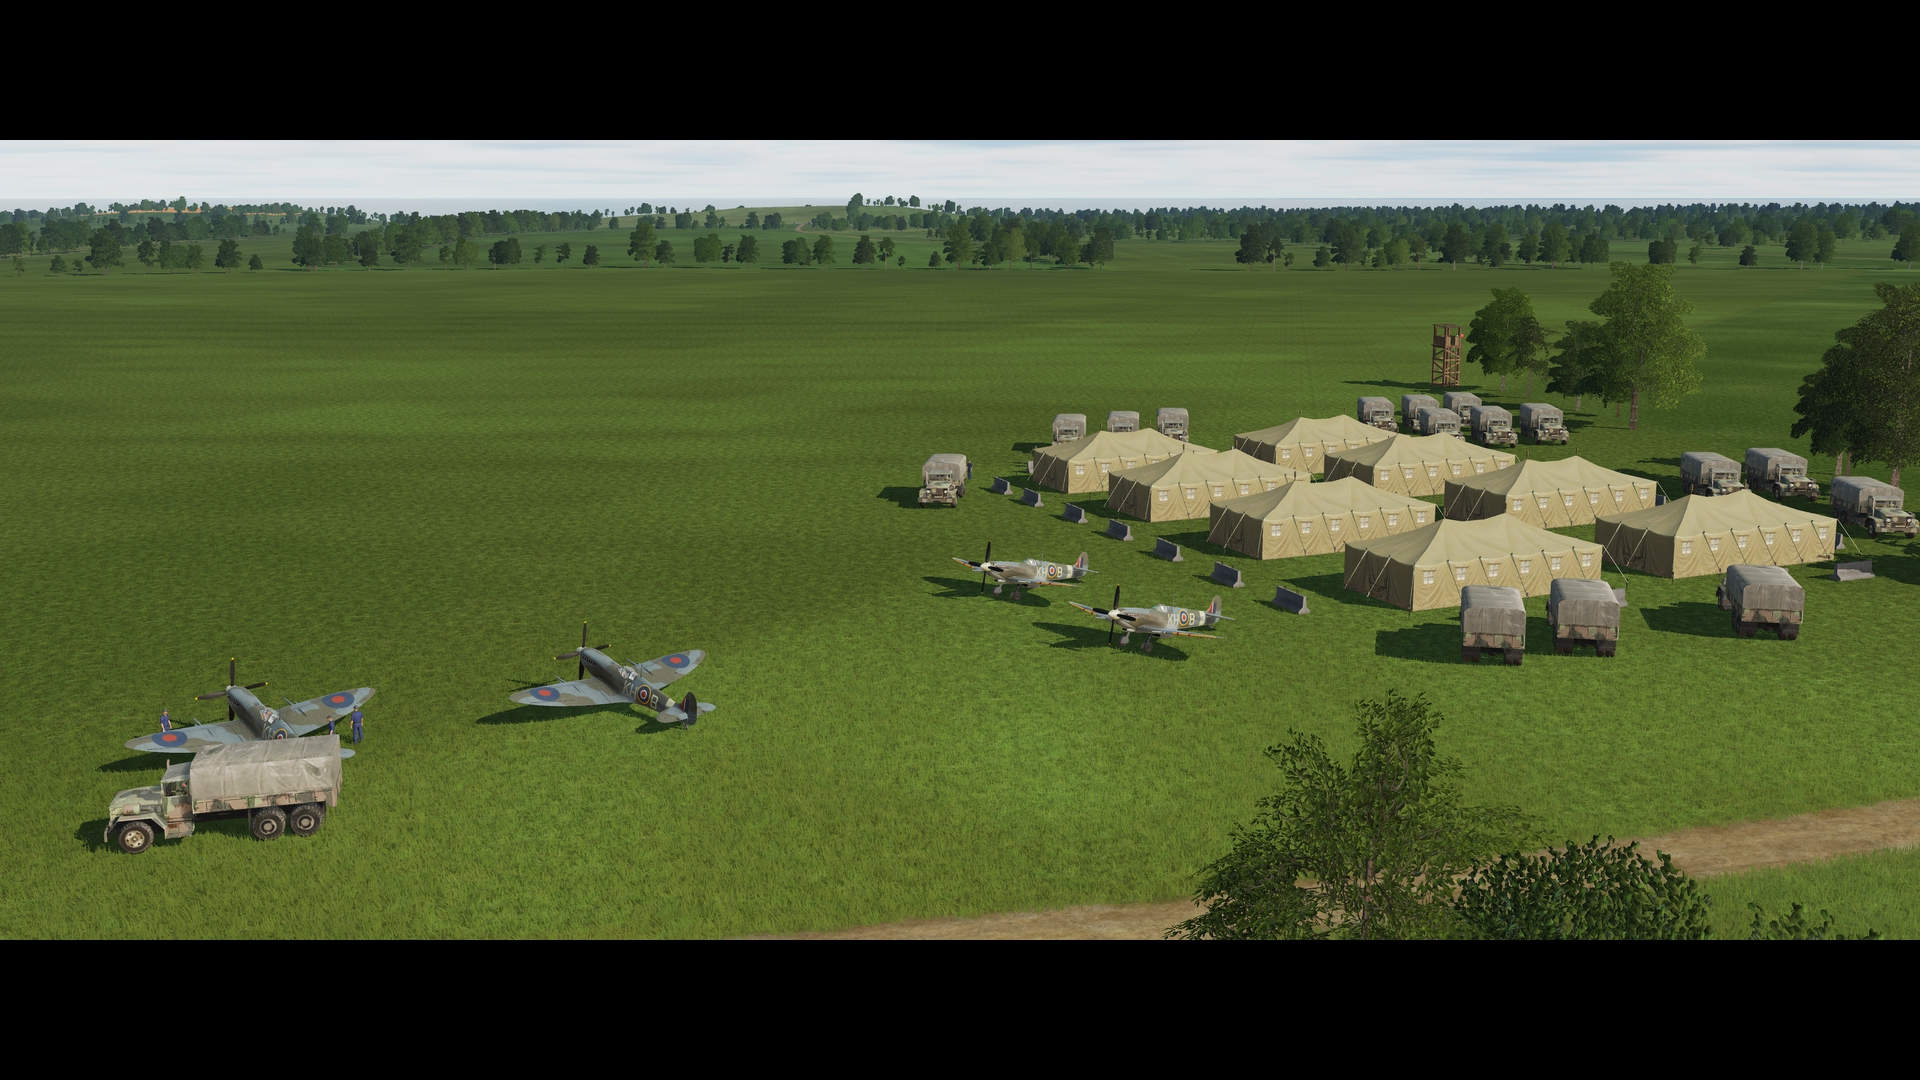 Operation Jubilee - FARP TRAINING, Bombing, Takeoff and Landing.